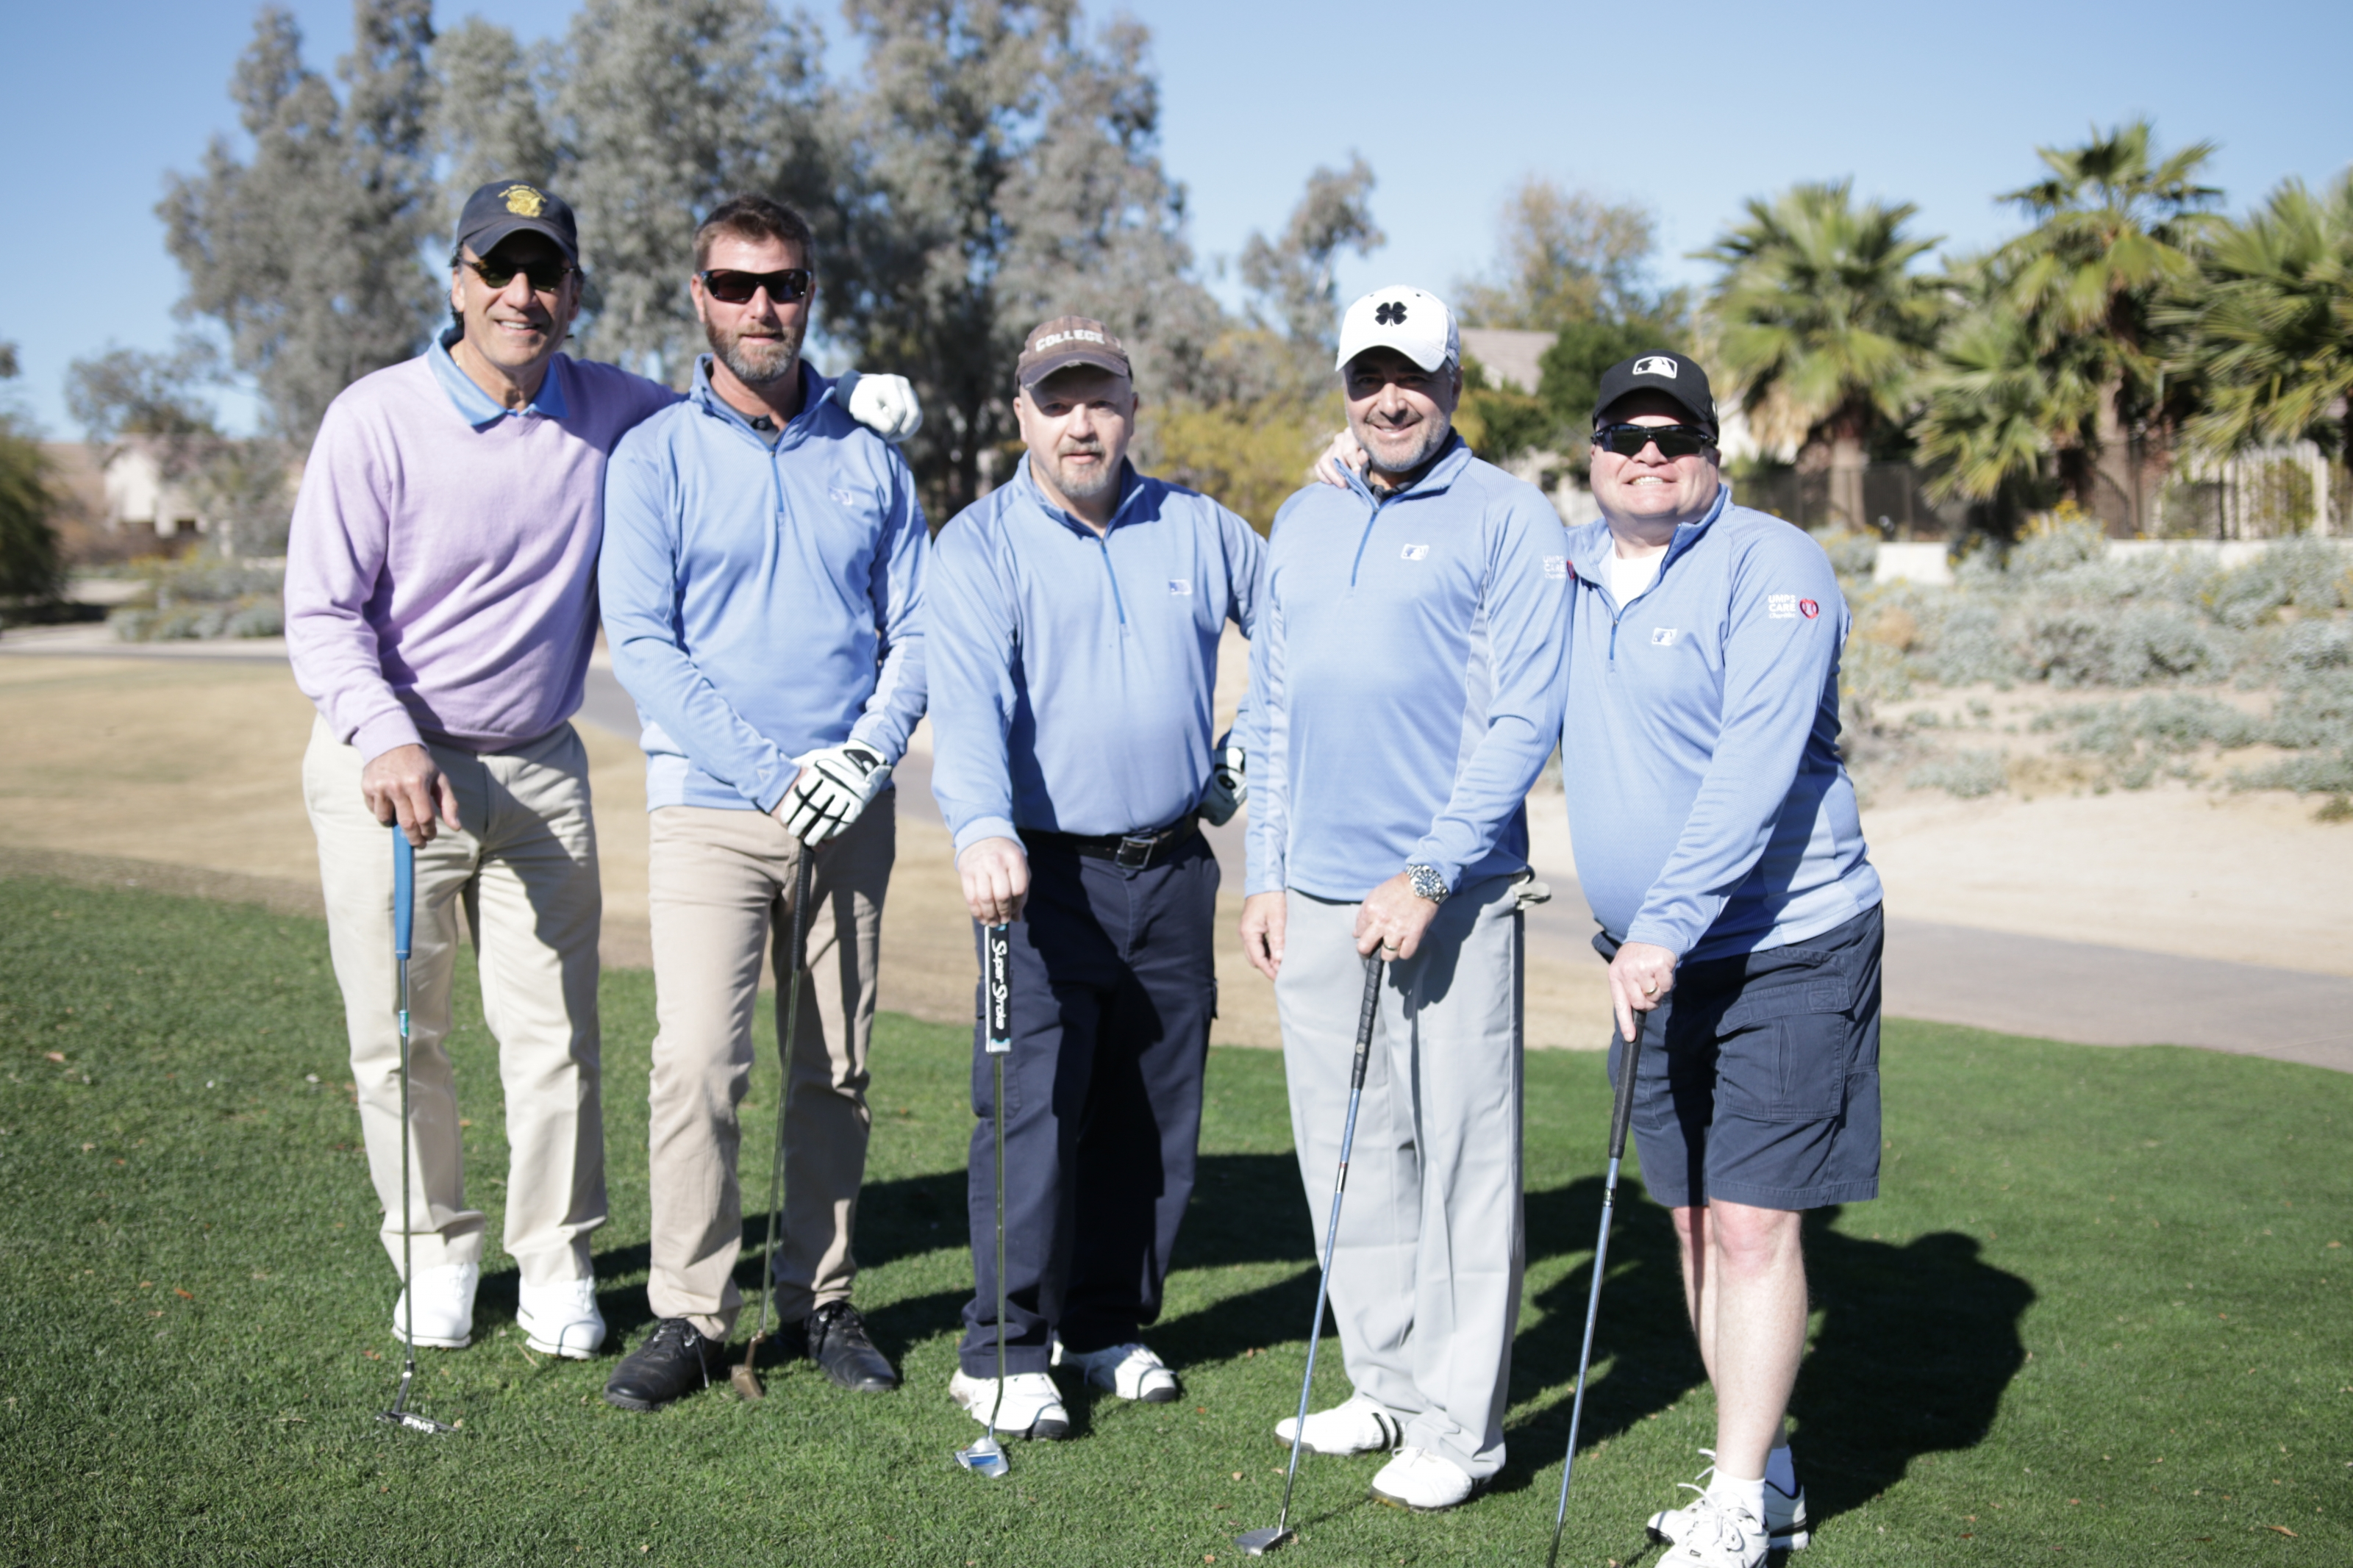 Registration now open for 15th Annual Golf Classic - sign up before it's sold out!